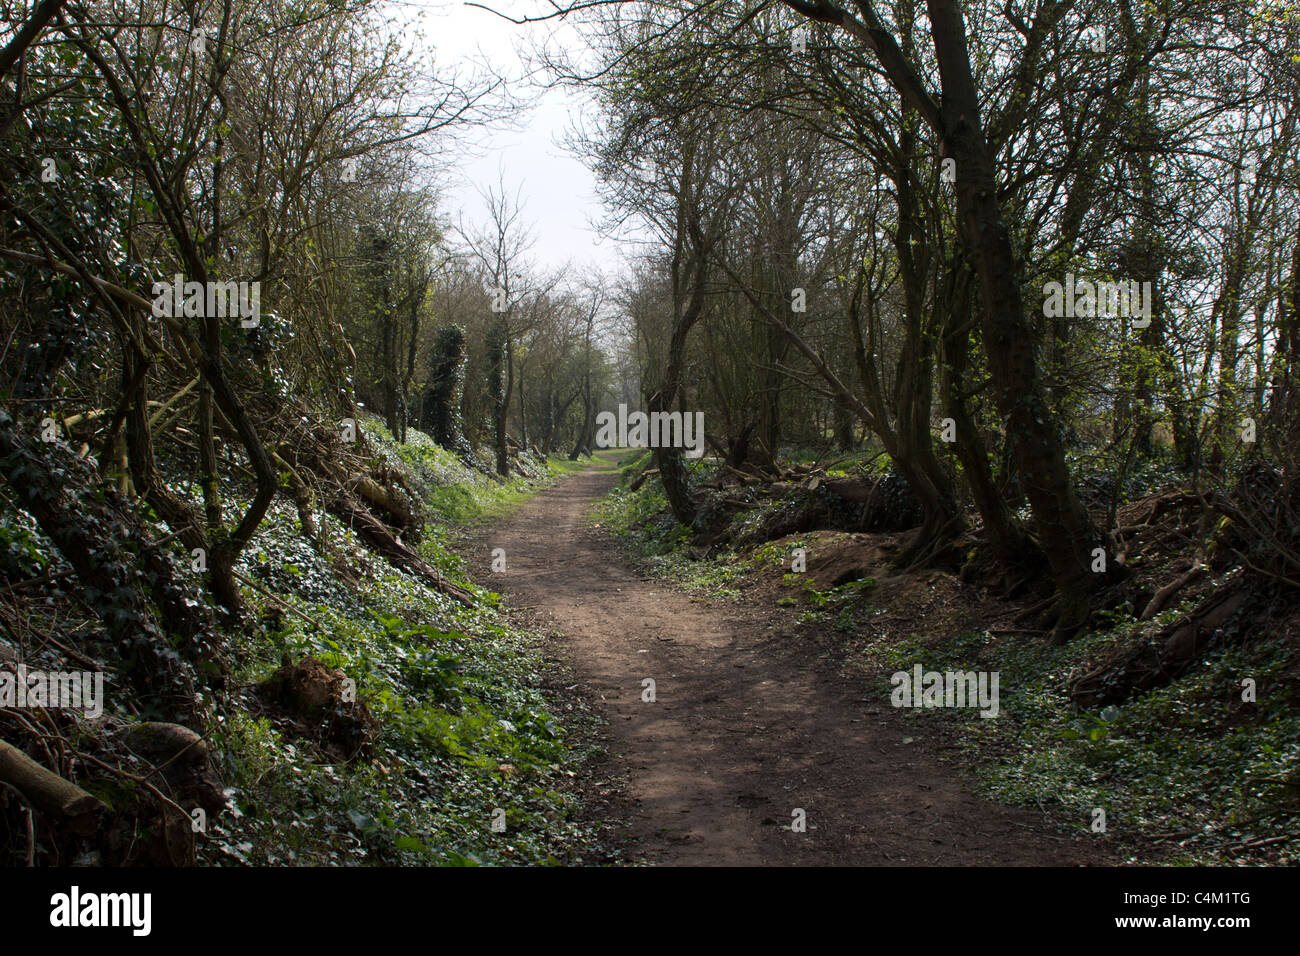 Country walk through tree line path - Stock Image